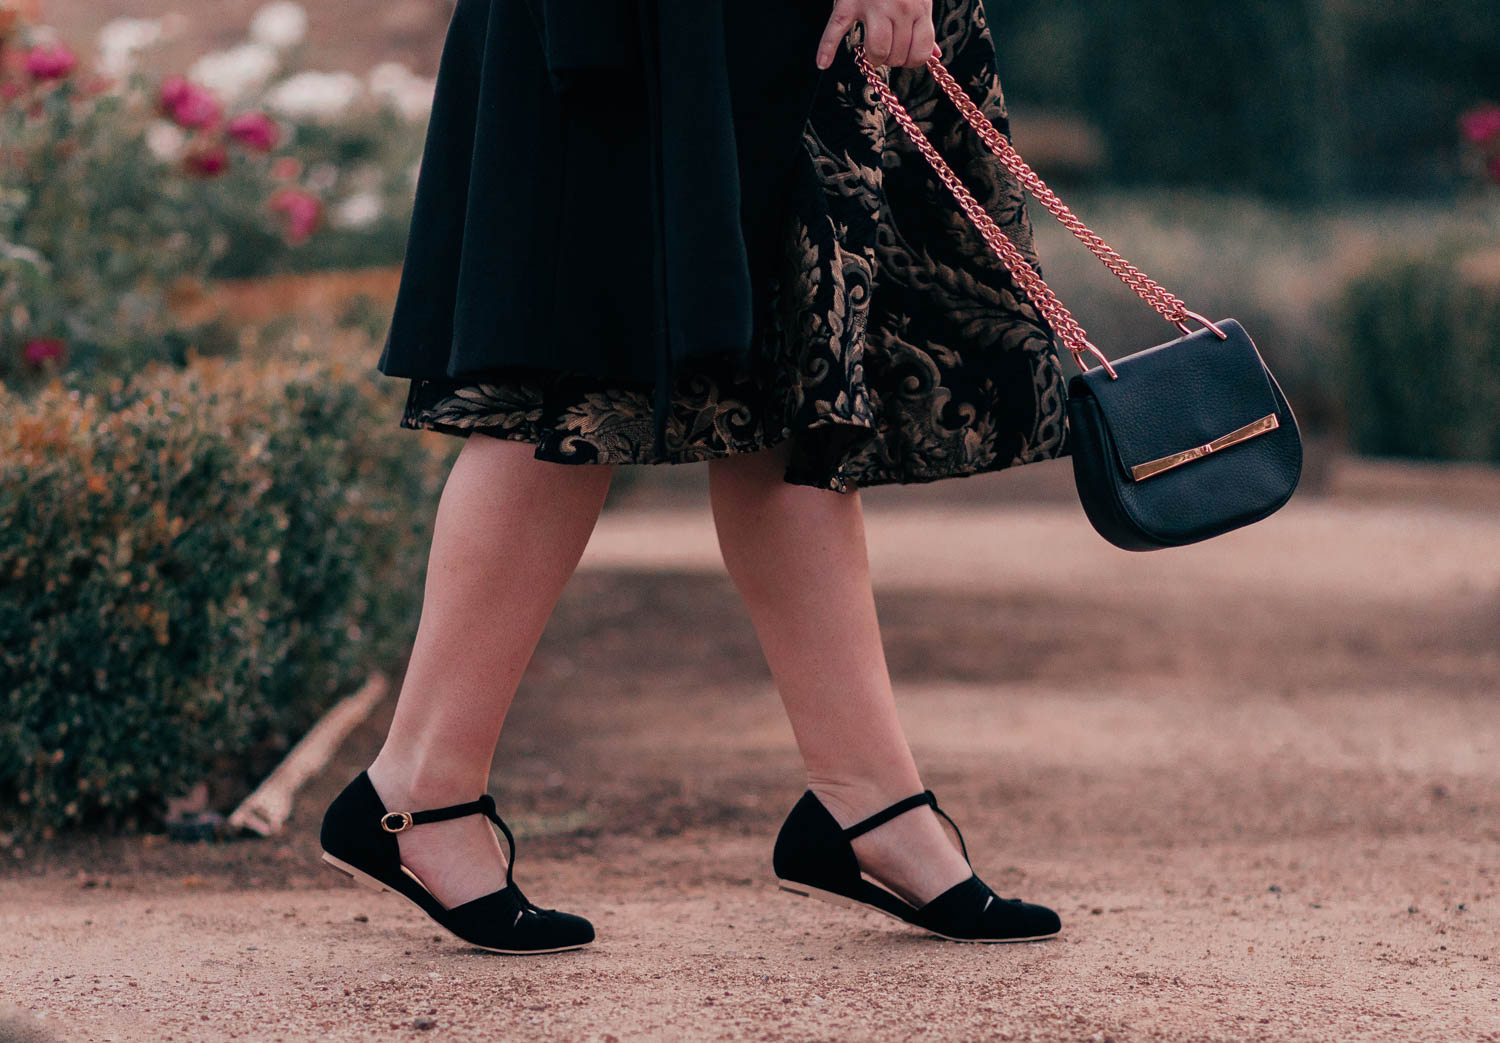 Fashion Blogger Elizabeth Hugen shares an elegant black holiday outfit idea including these charlie stone flats